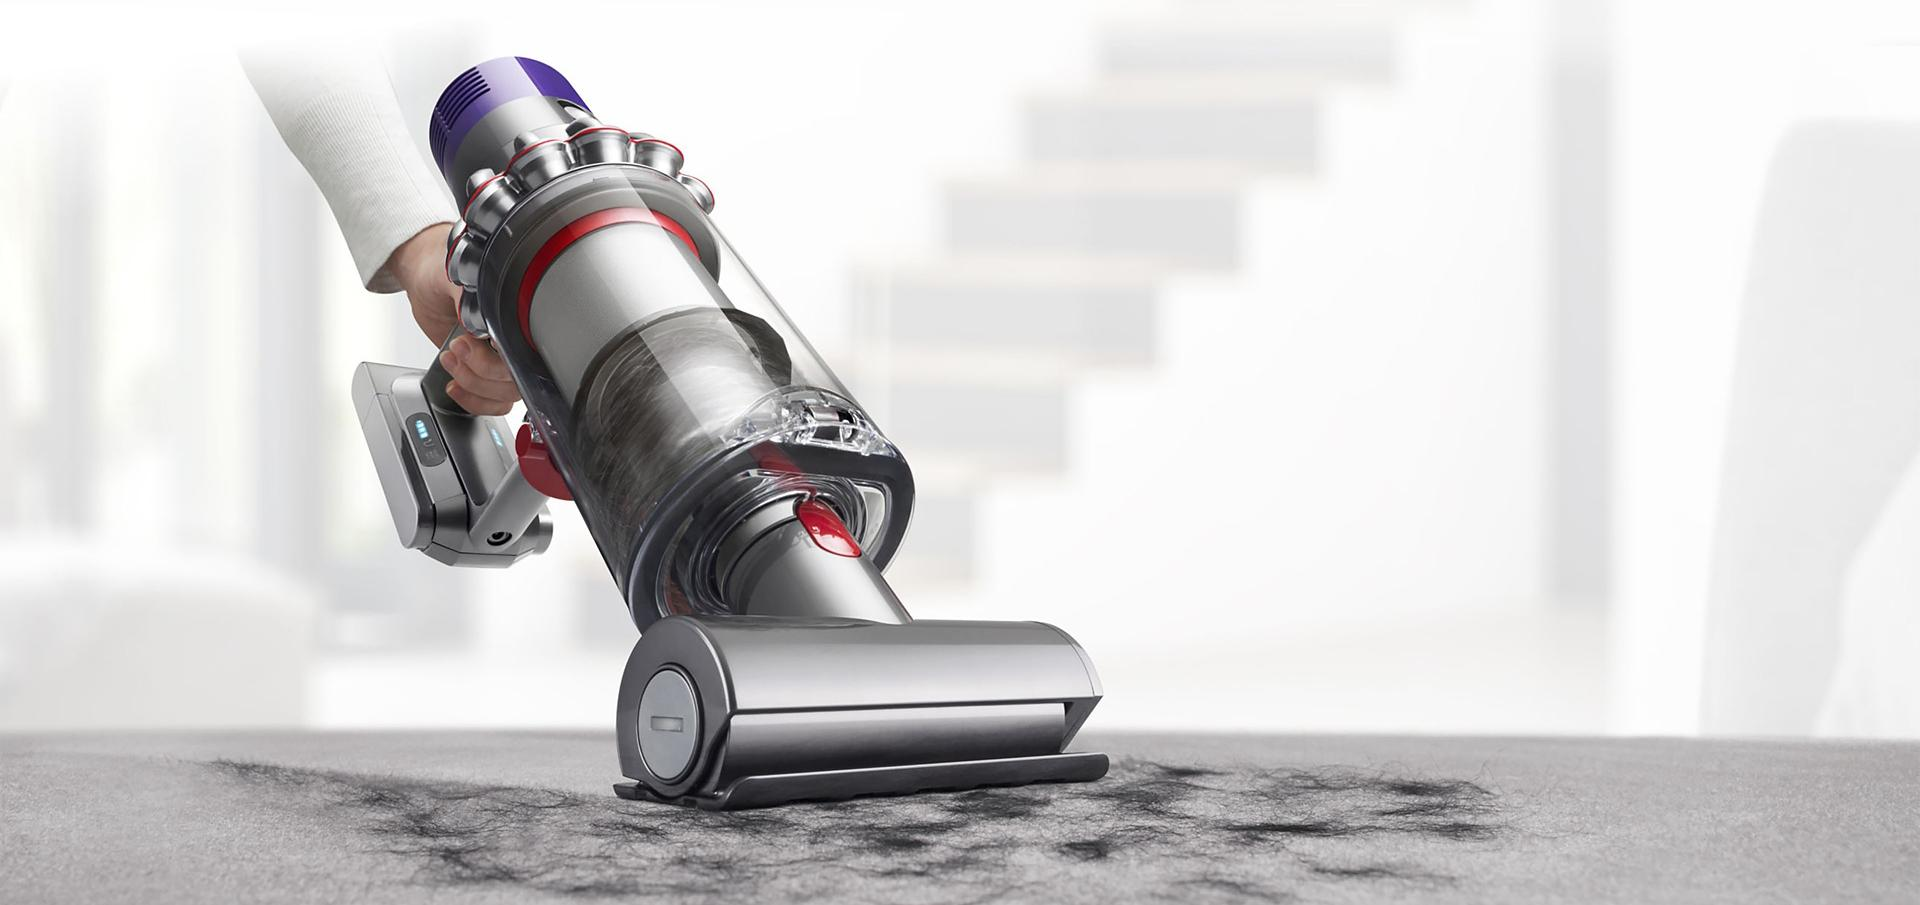 Dyson Cyclone V10™ vacuum in handheld mode cleaning upholstery